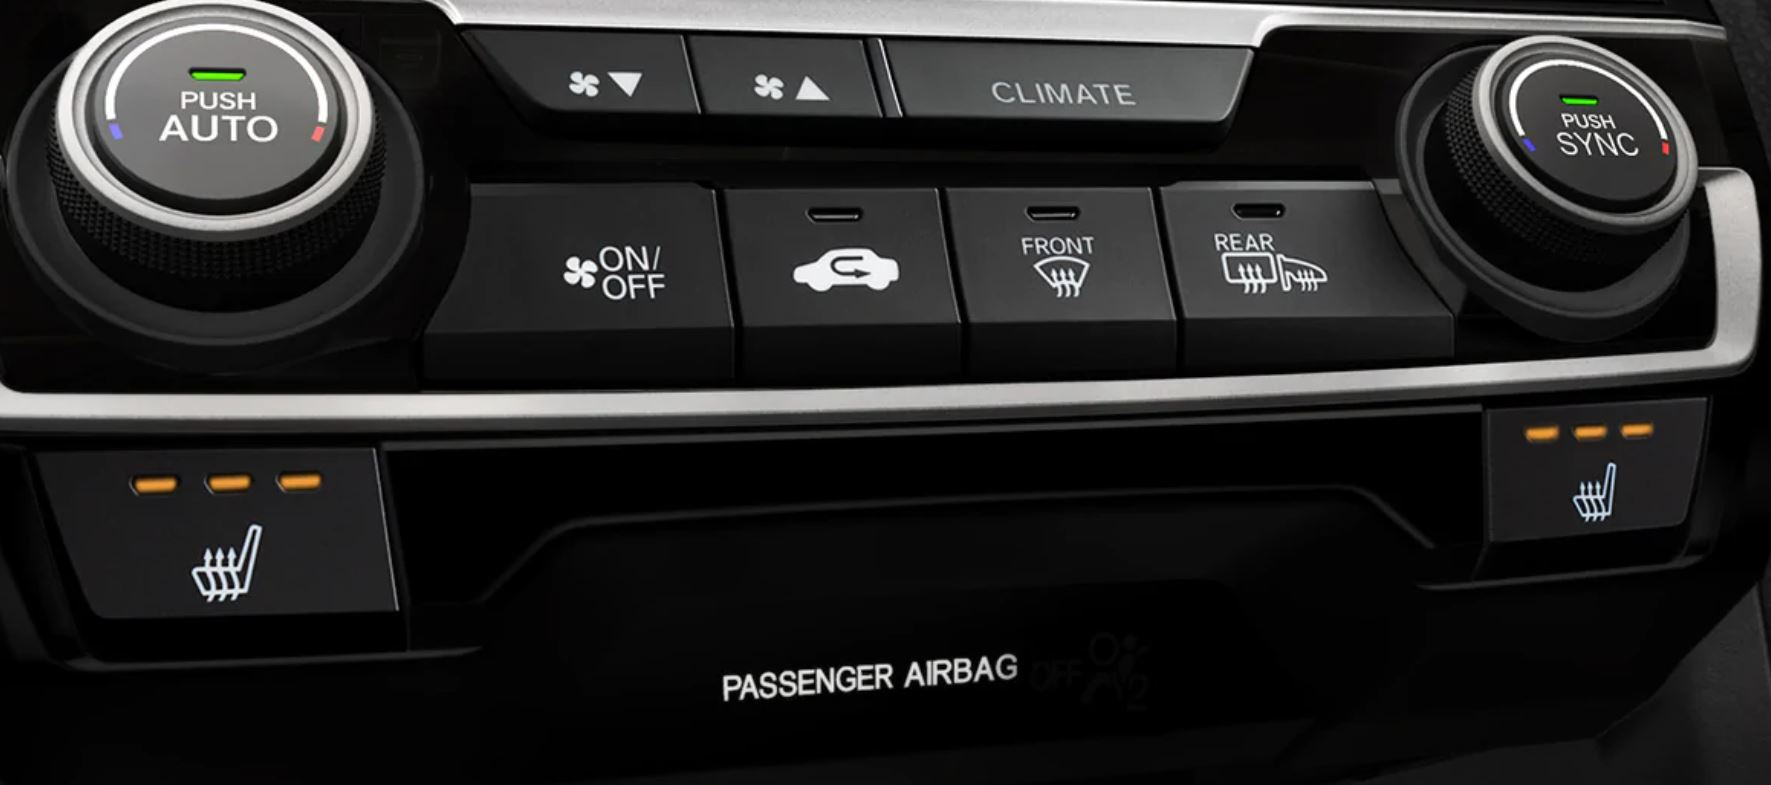 Climate Controls in the 2020 Civic